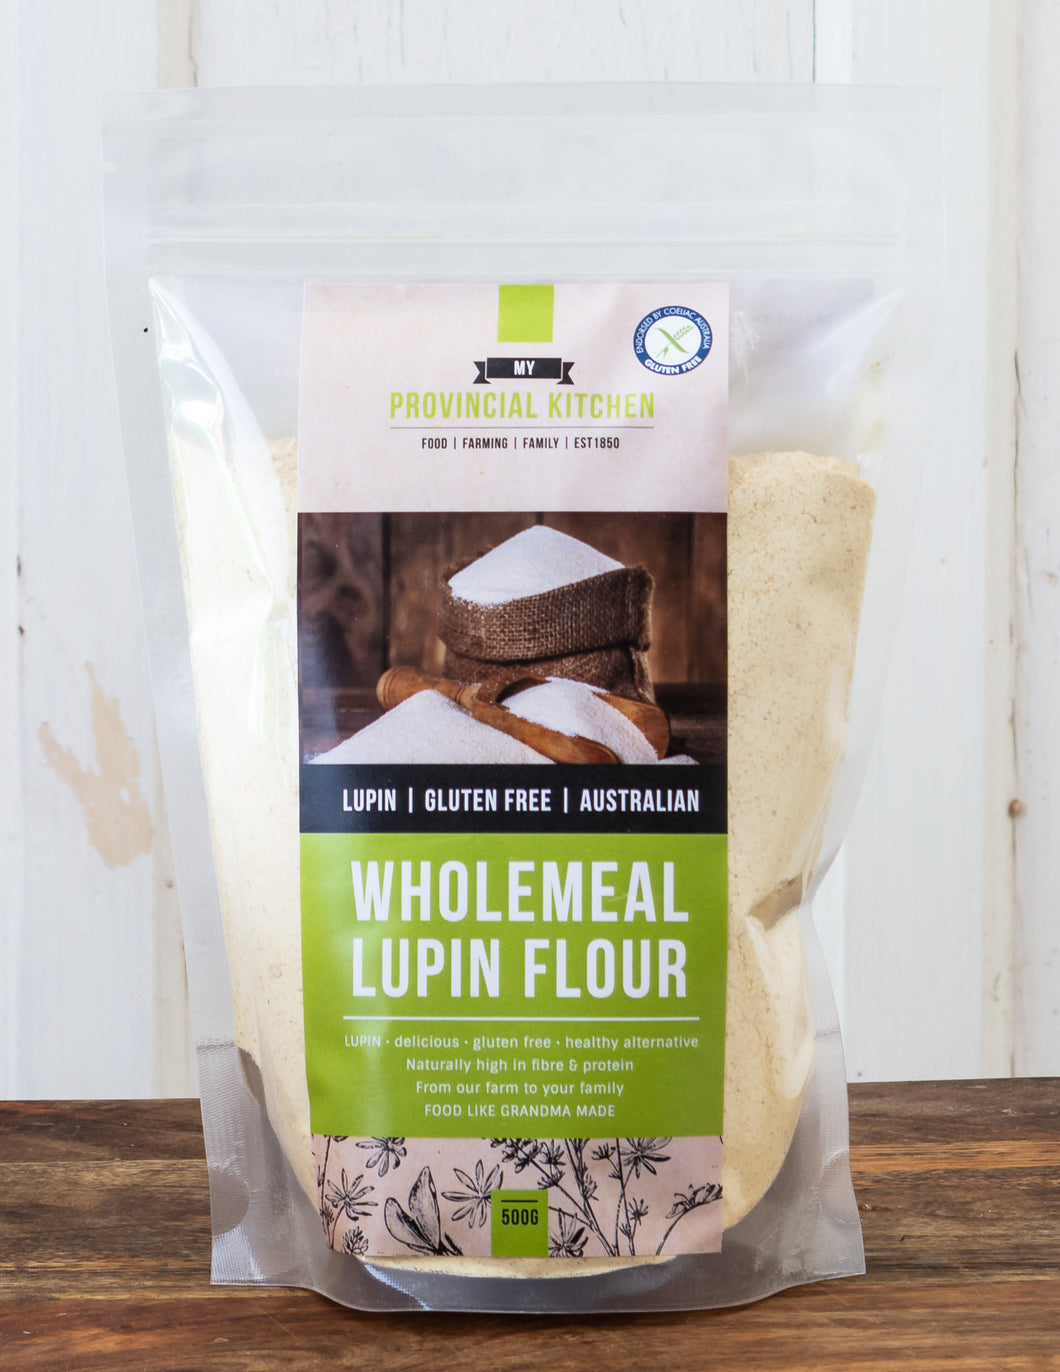 WHOLEMEAL LUPIN FLOUR